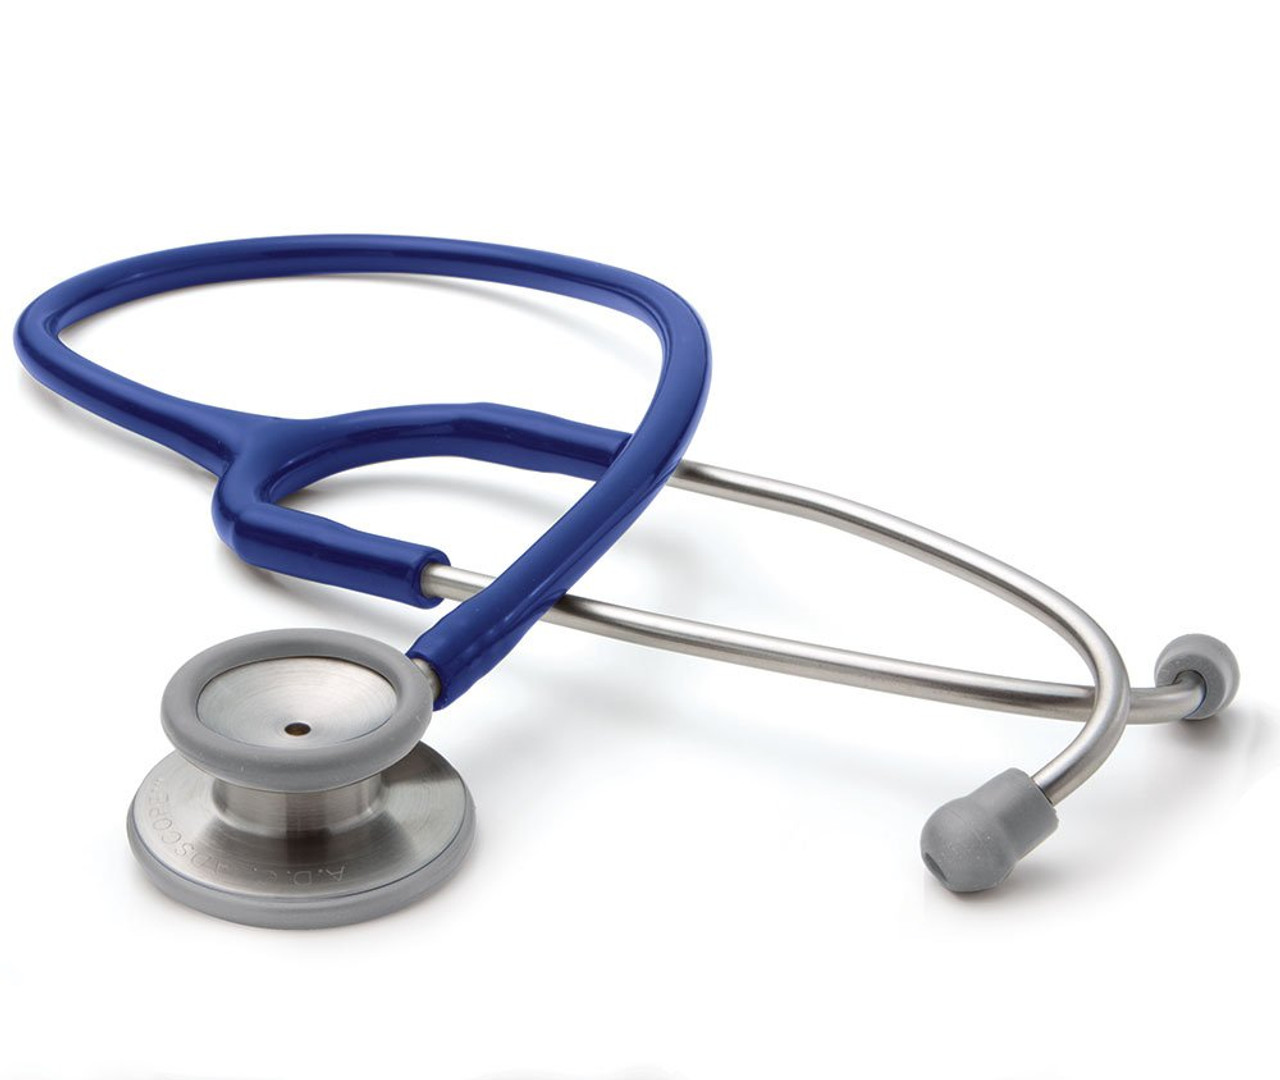 ADC 603 General Diagnostic Stethoscope, Royal Blue, 603RB